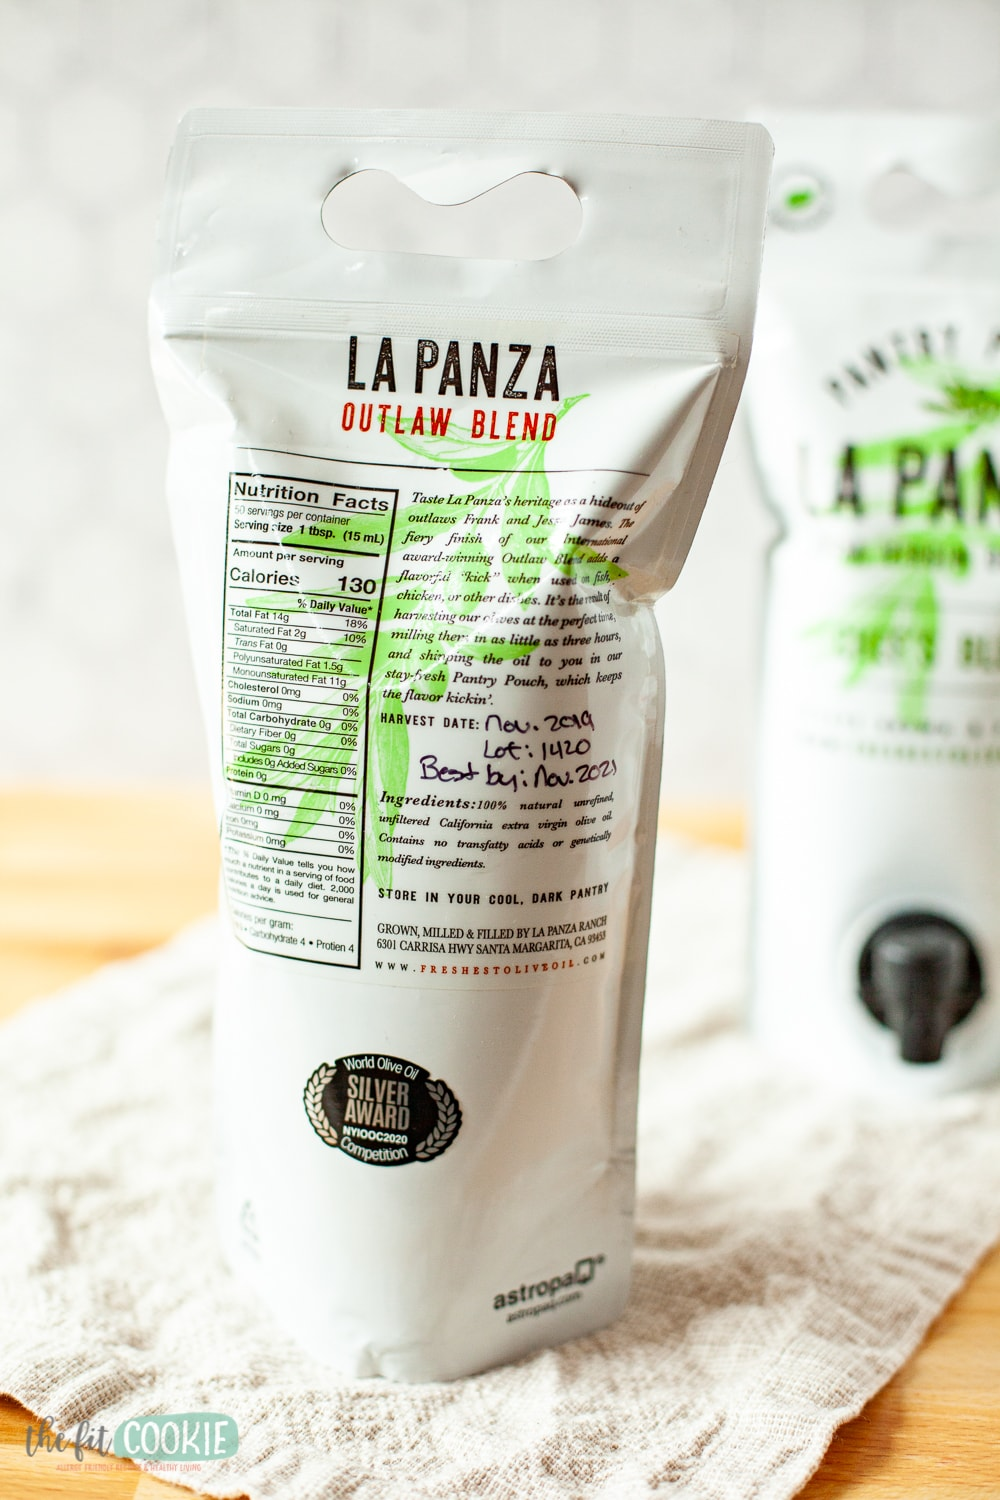 Pouch of La Panza olive oil Outlaw Blend